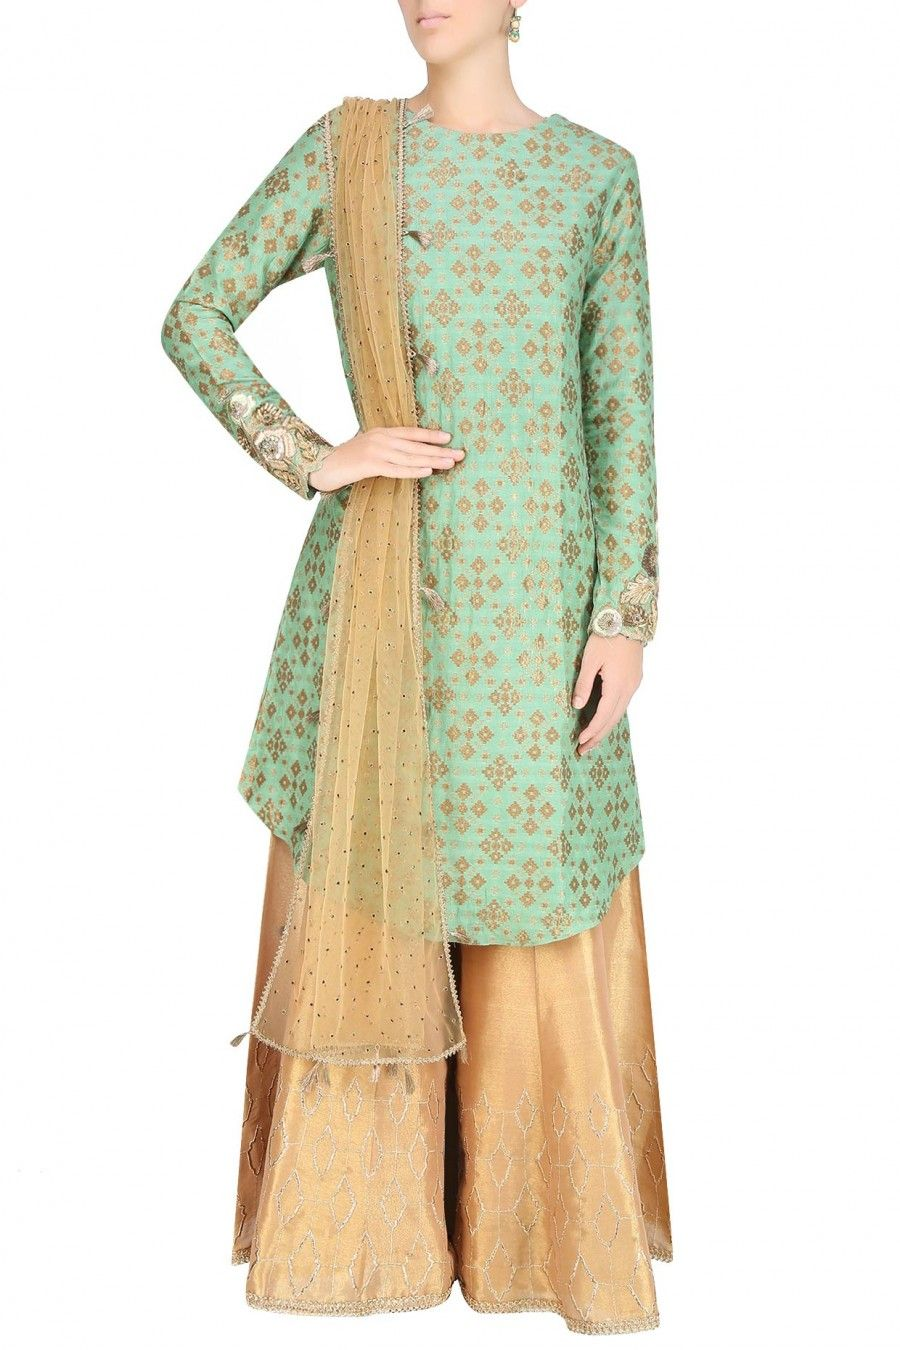 fd9931067c Sage green zardozi embroidered kurta with golden shimmer sharara pants  available only at Pernia's Pop Up Shop.